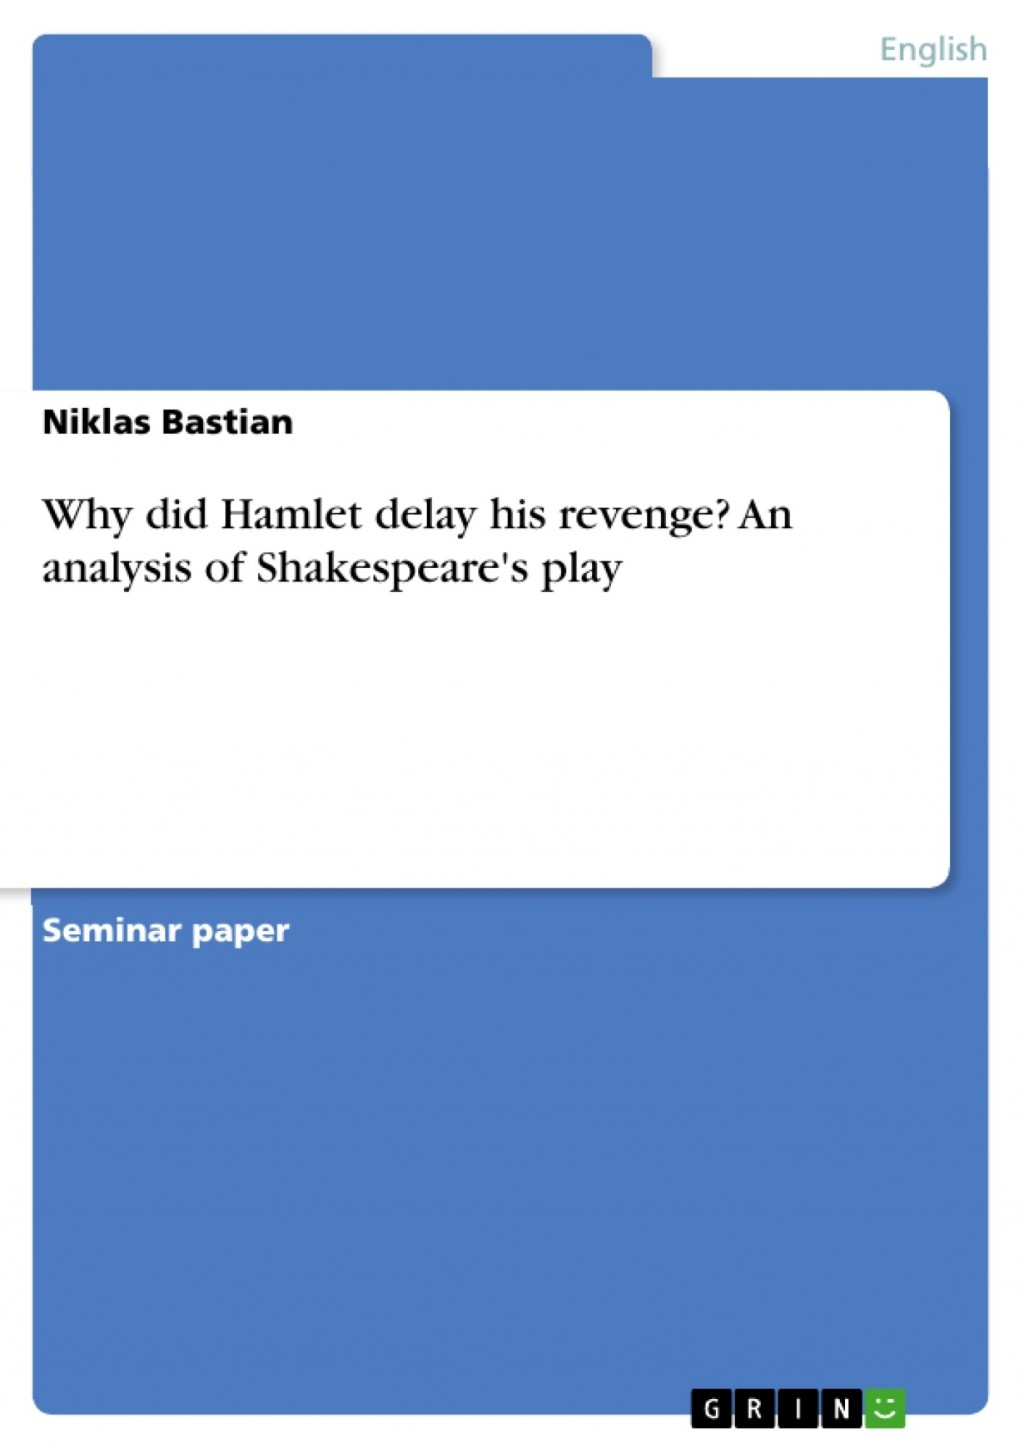 002 338818 0 Essay Example Hamlet Outstanding Delay Why Did Revenge Large